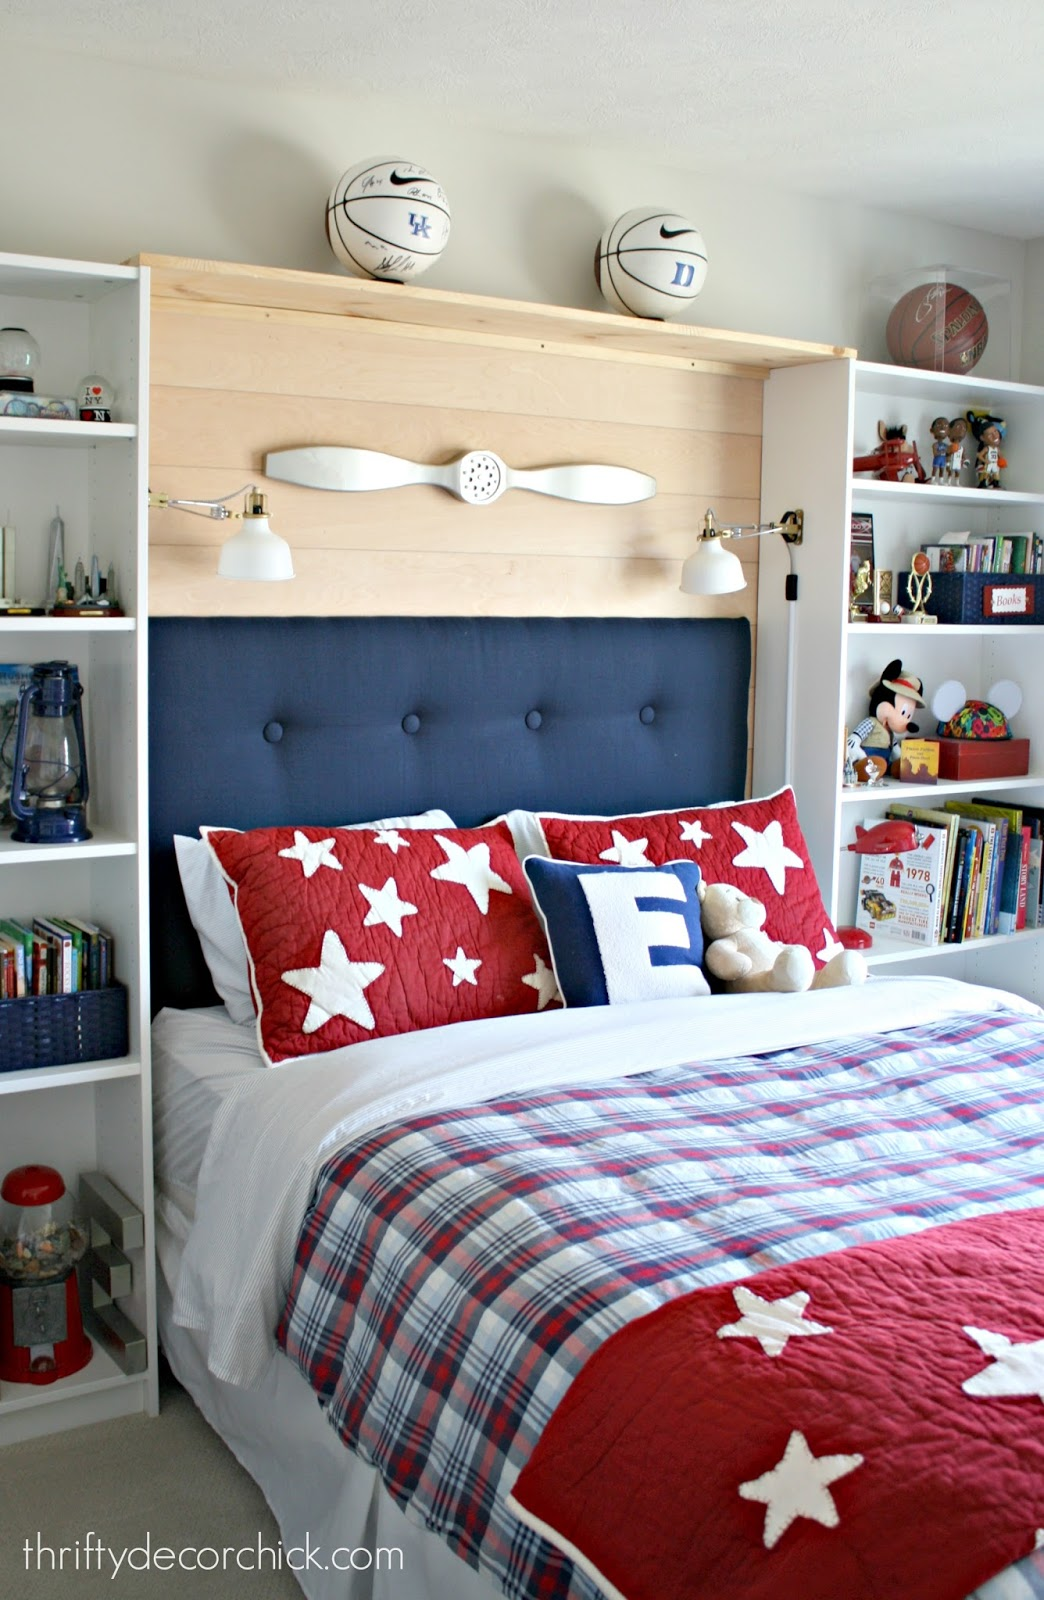 Creating a bed nook with bookcases